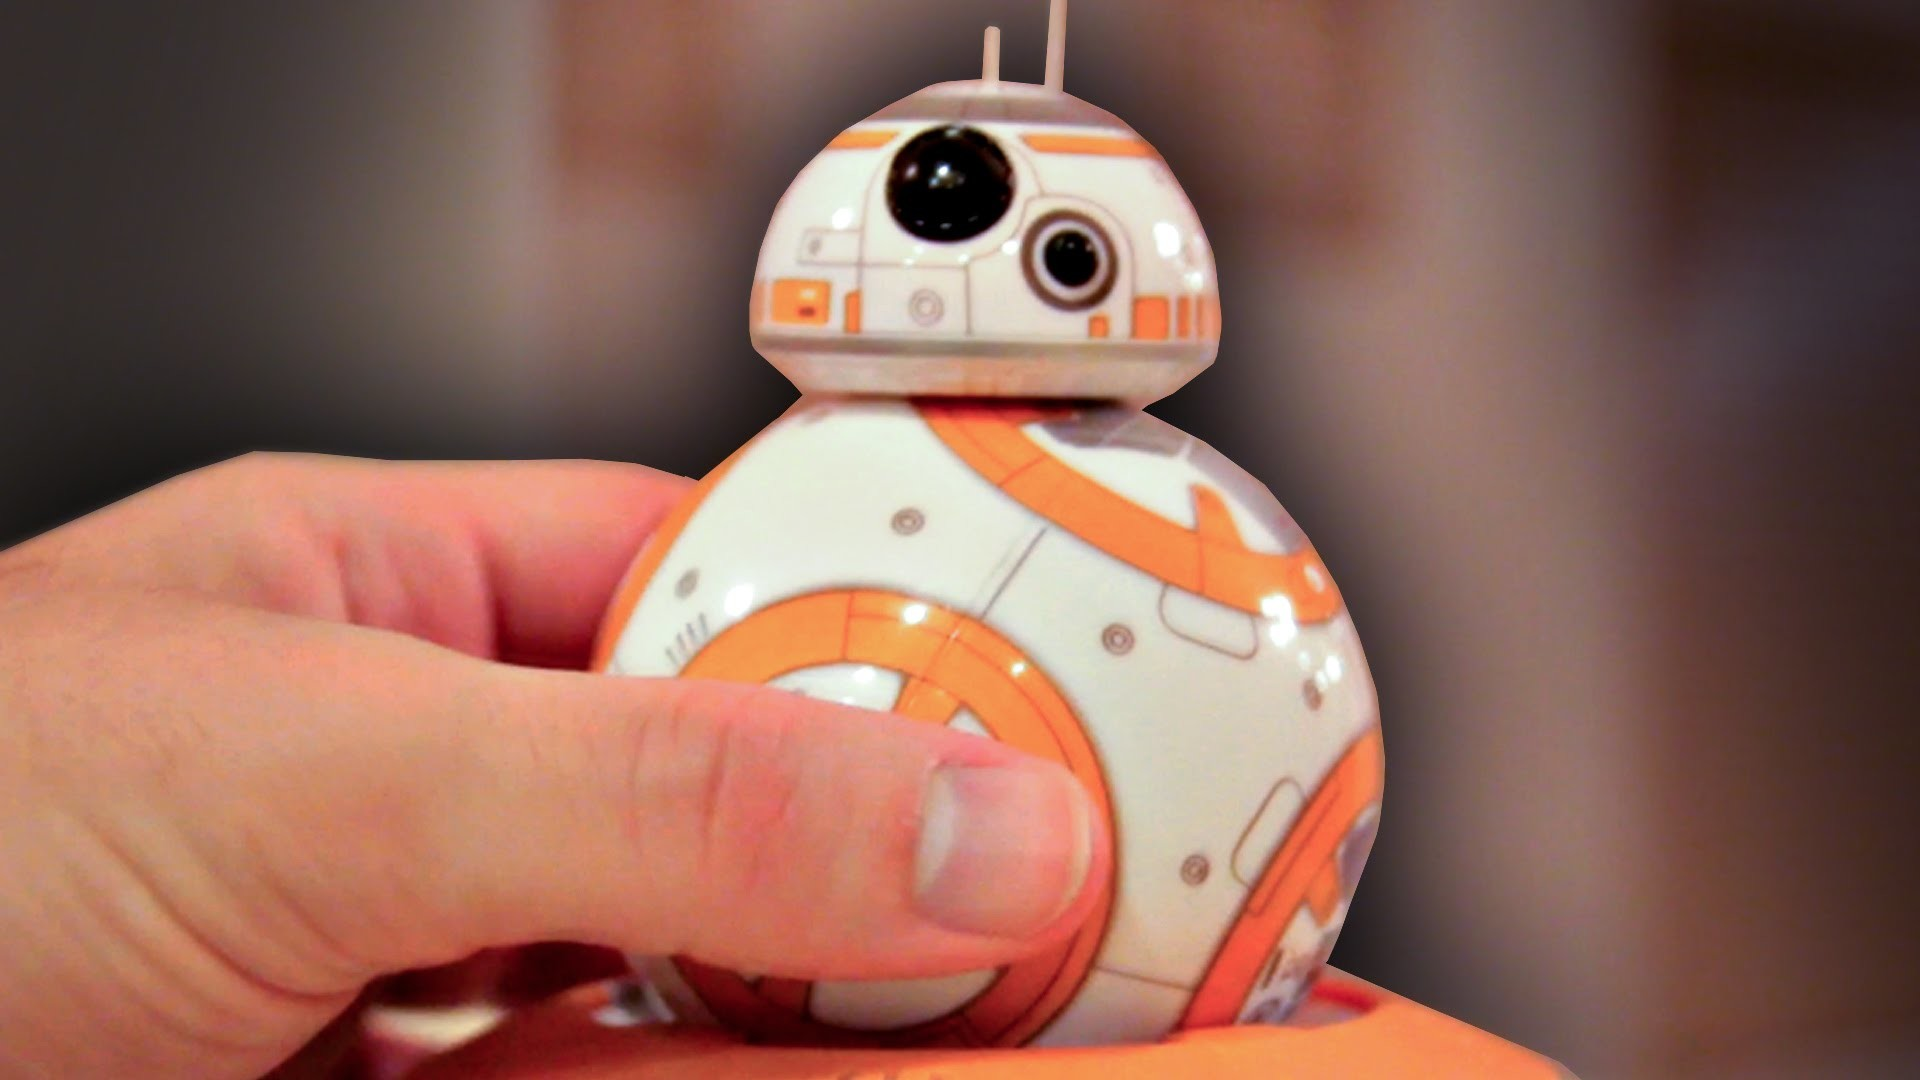 Hands-on with BB-8 Ball Droid Toy by Sphero! Star Wars Episode 7: The Force  Awakens Toy Collection – YouTube